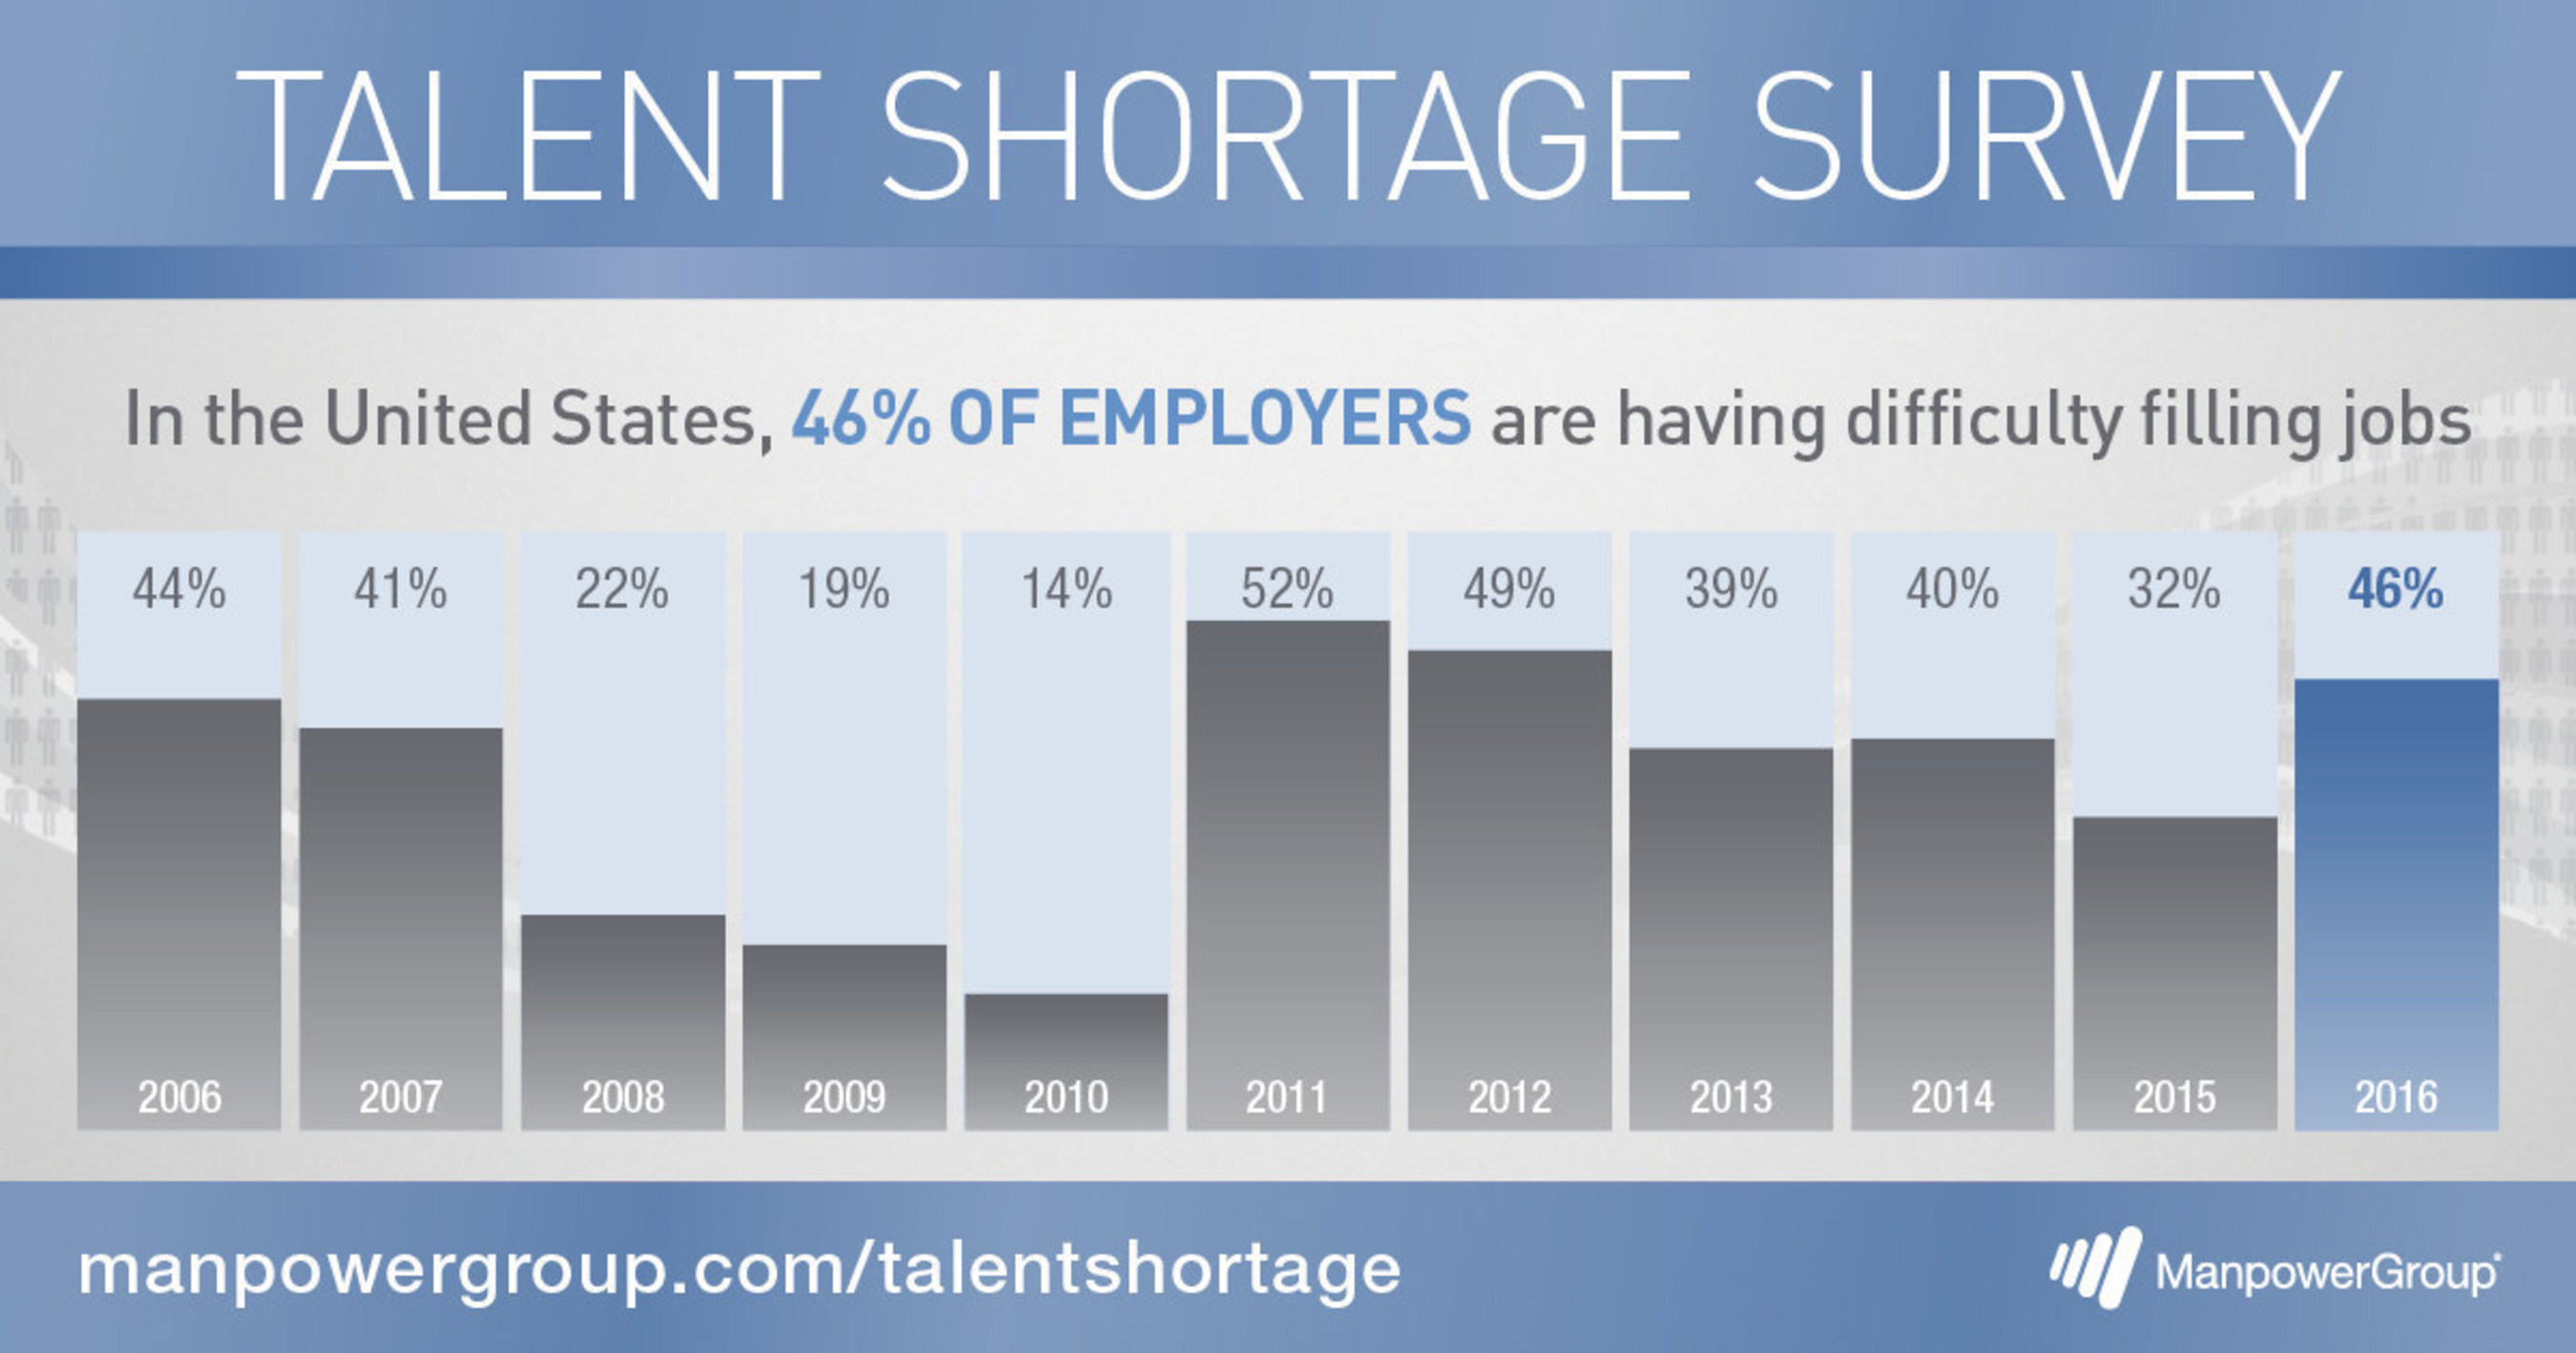 In the United States, 46% of employers are having difficulty filling jobs.